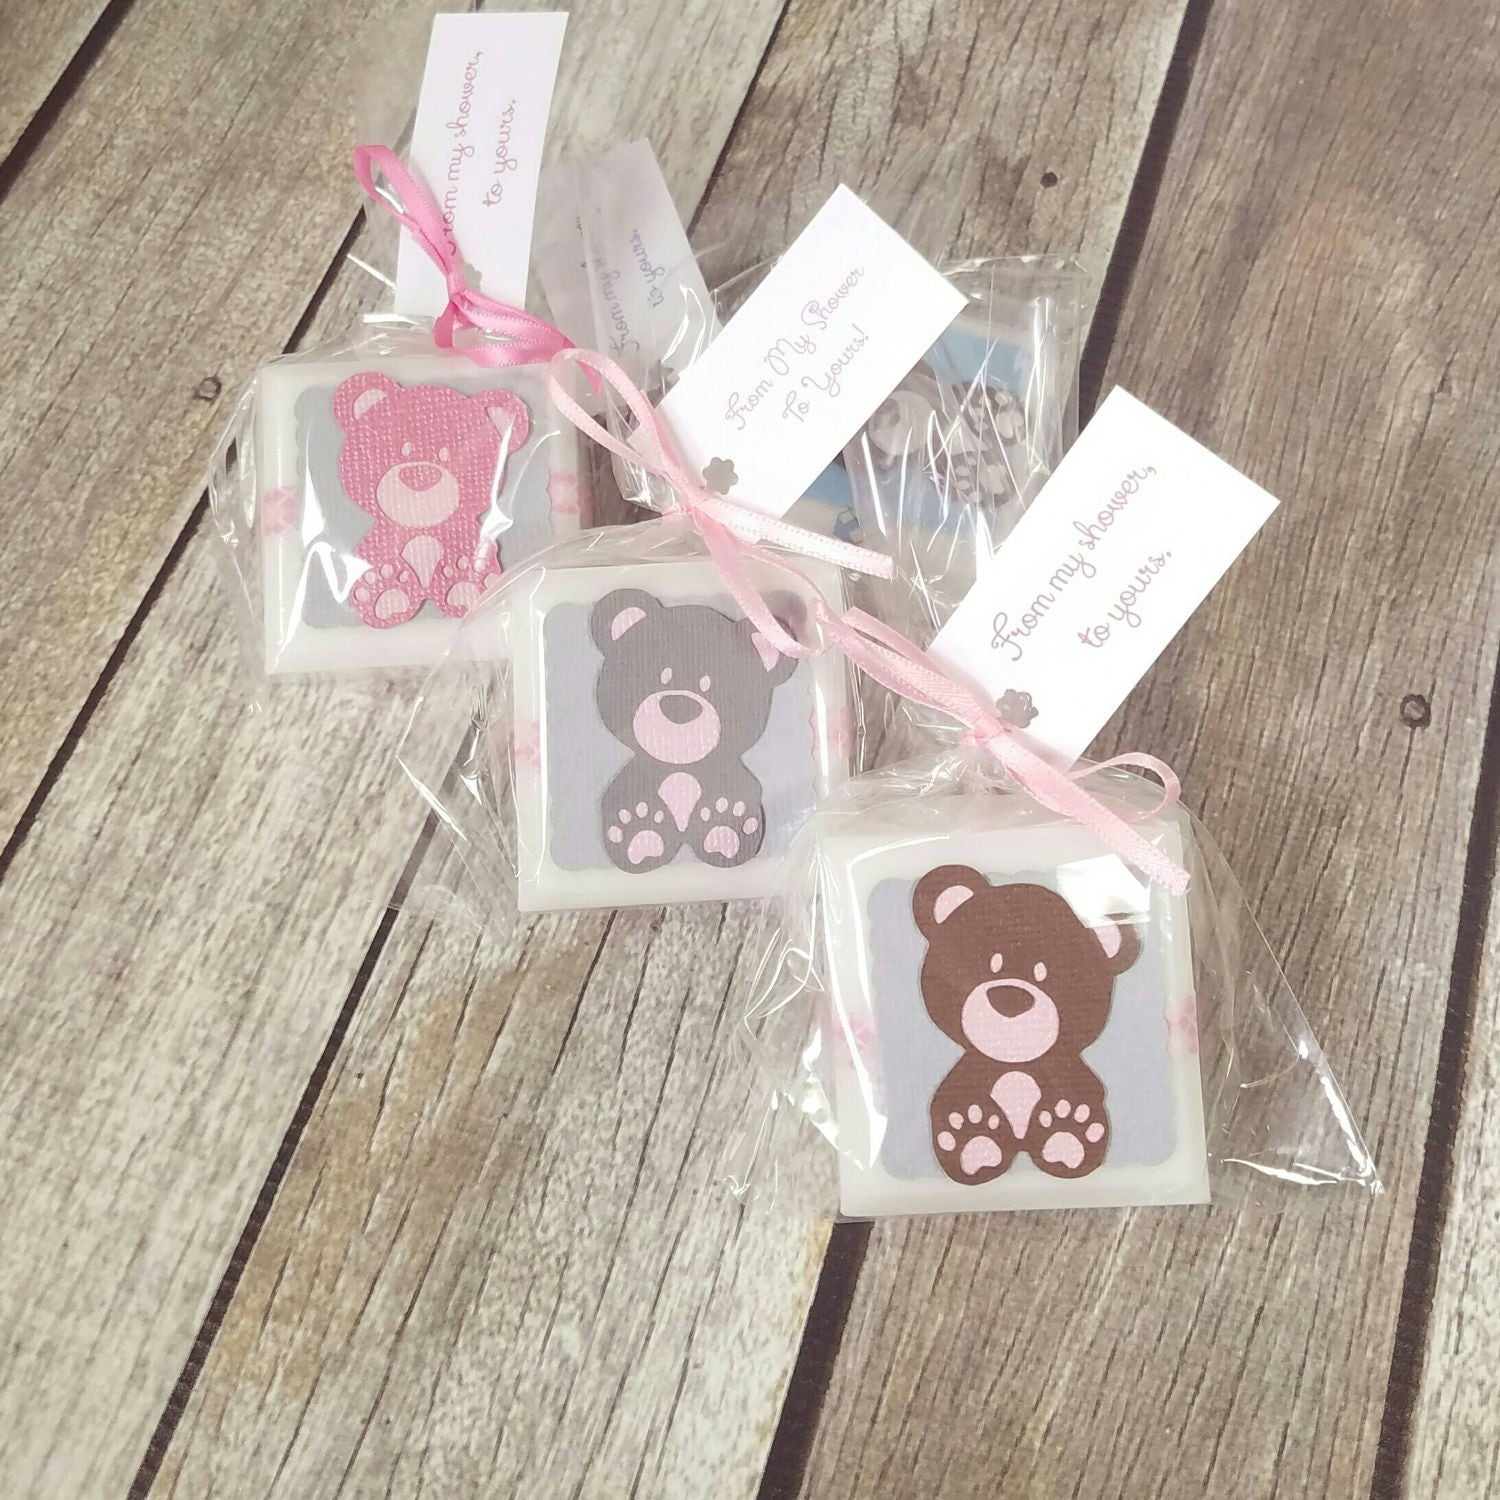 16 Teddy Bear Baby Shower Favors baby Shower Decorations Teddy